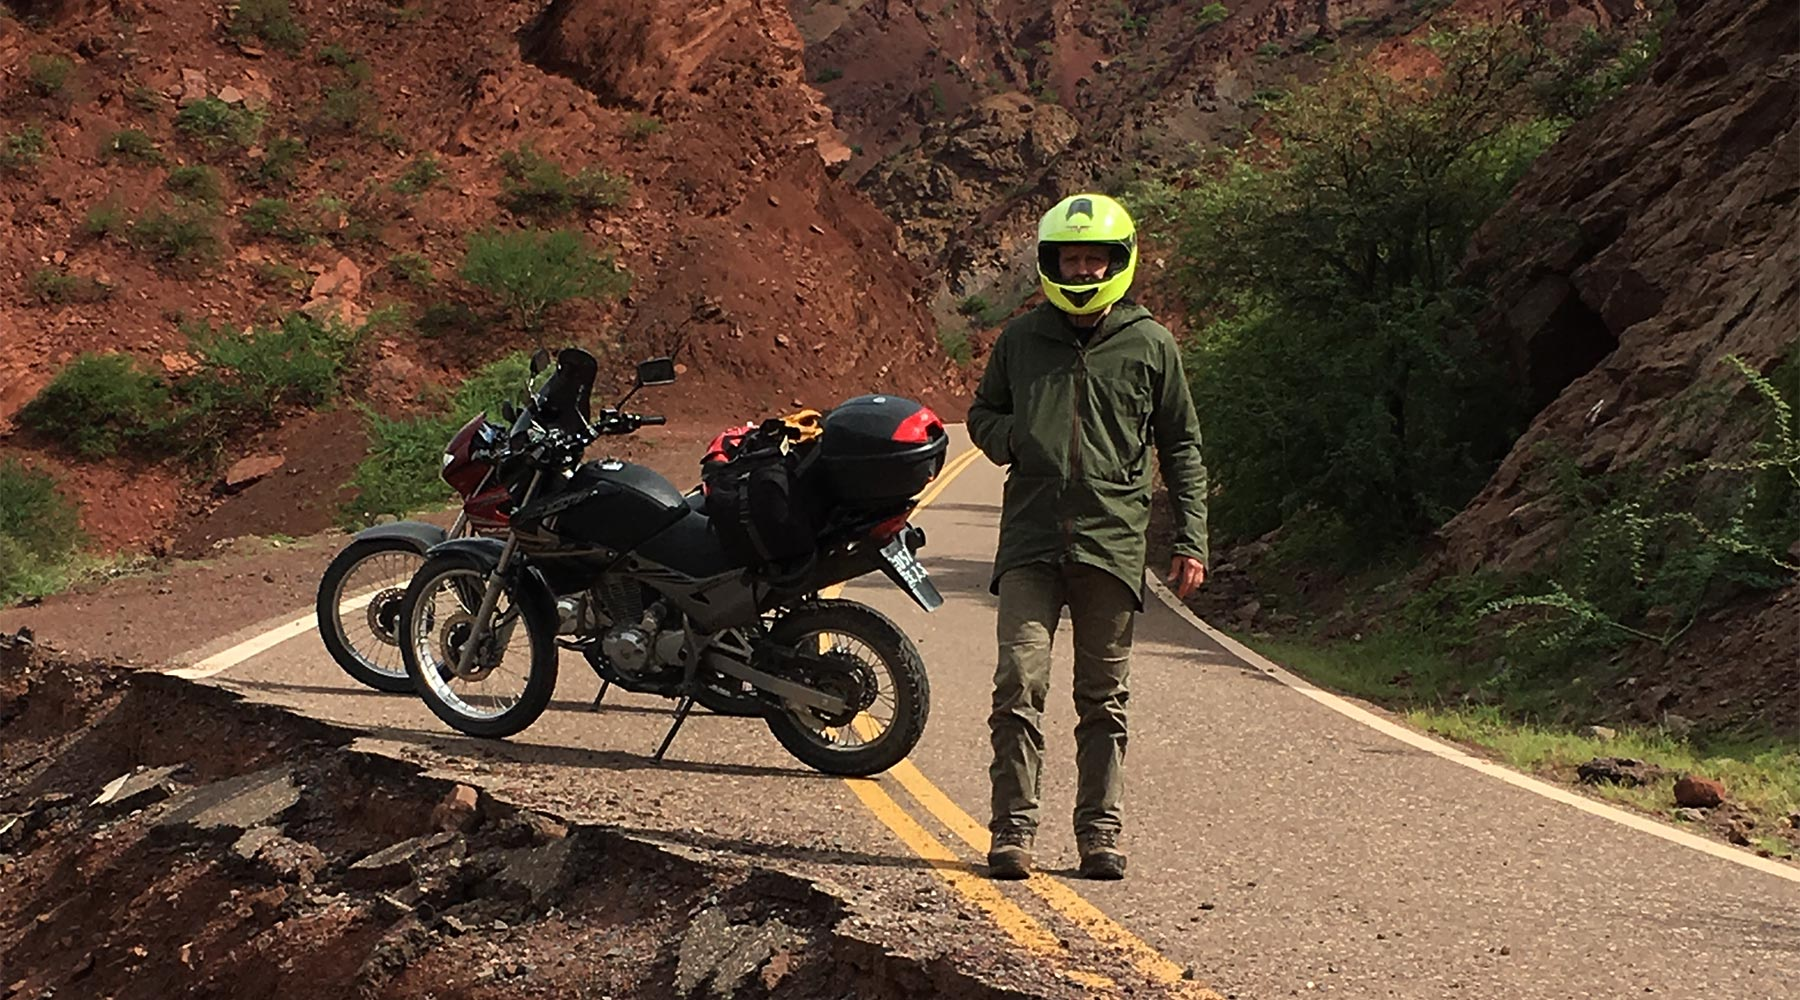 Ventile jacket testing in Patagonia on two wheels